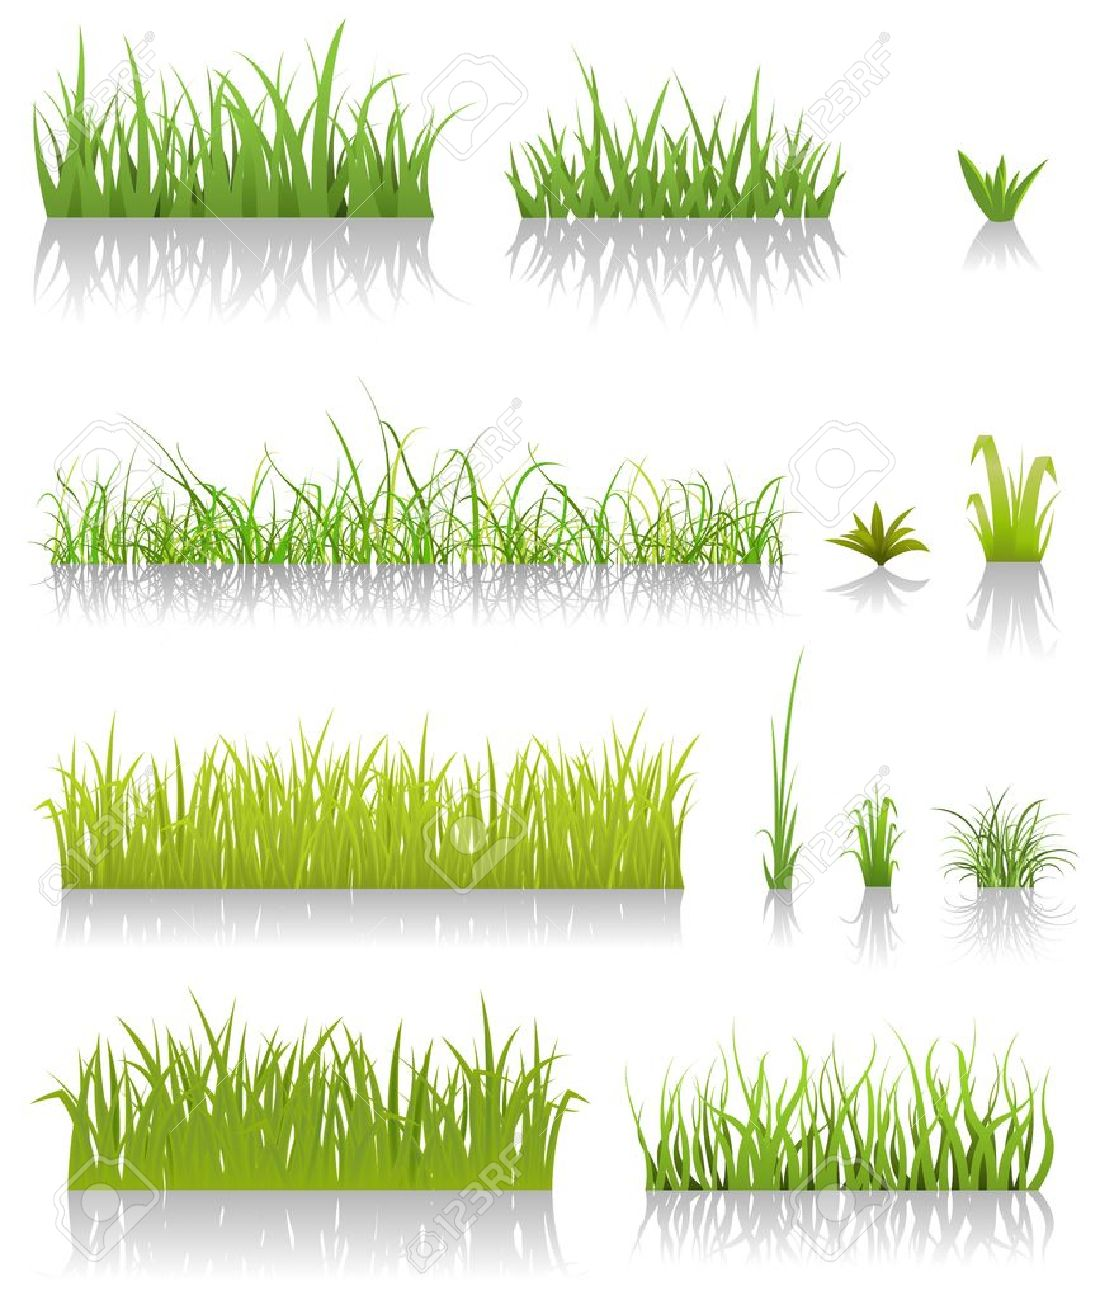 Thin grass clipart jpg black and white library Tall thin curved grass clipart - ClipartFest jpg black and white library